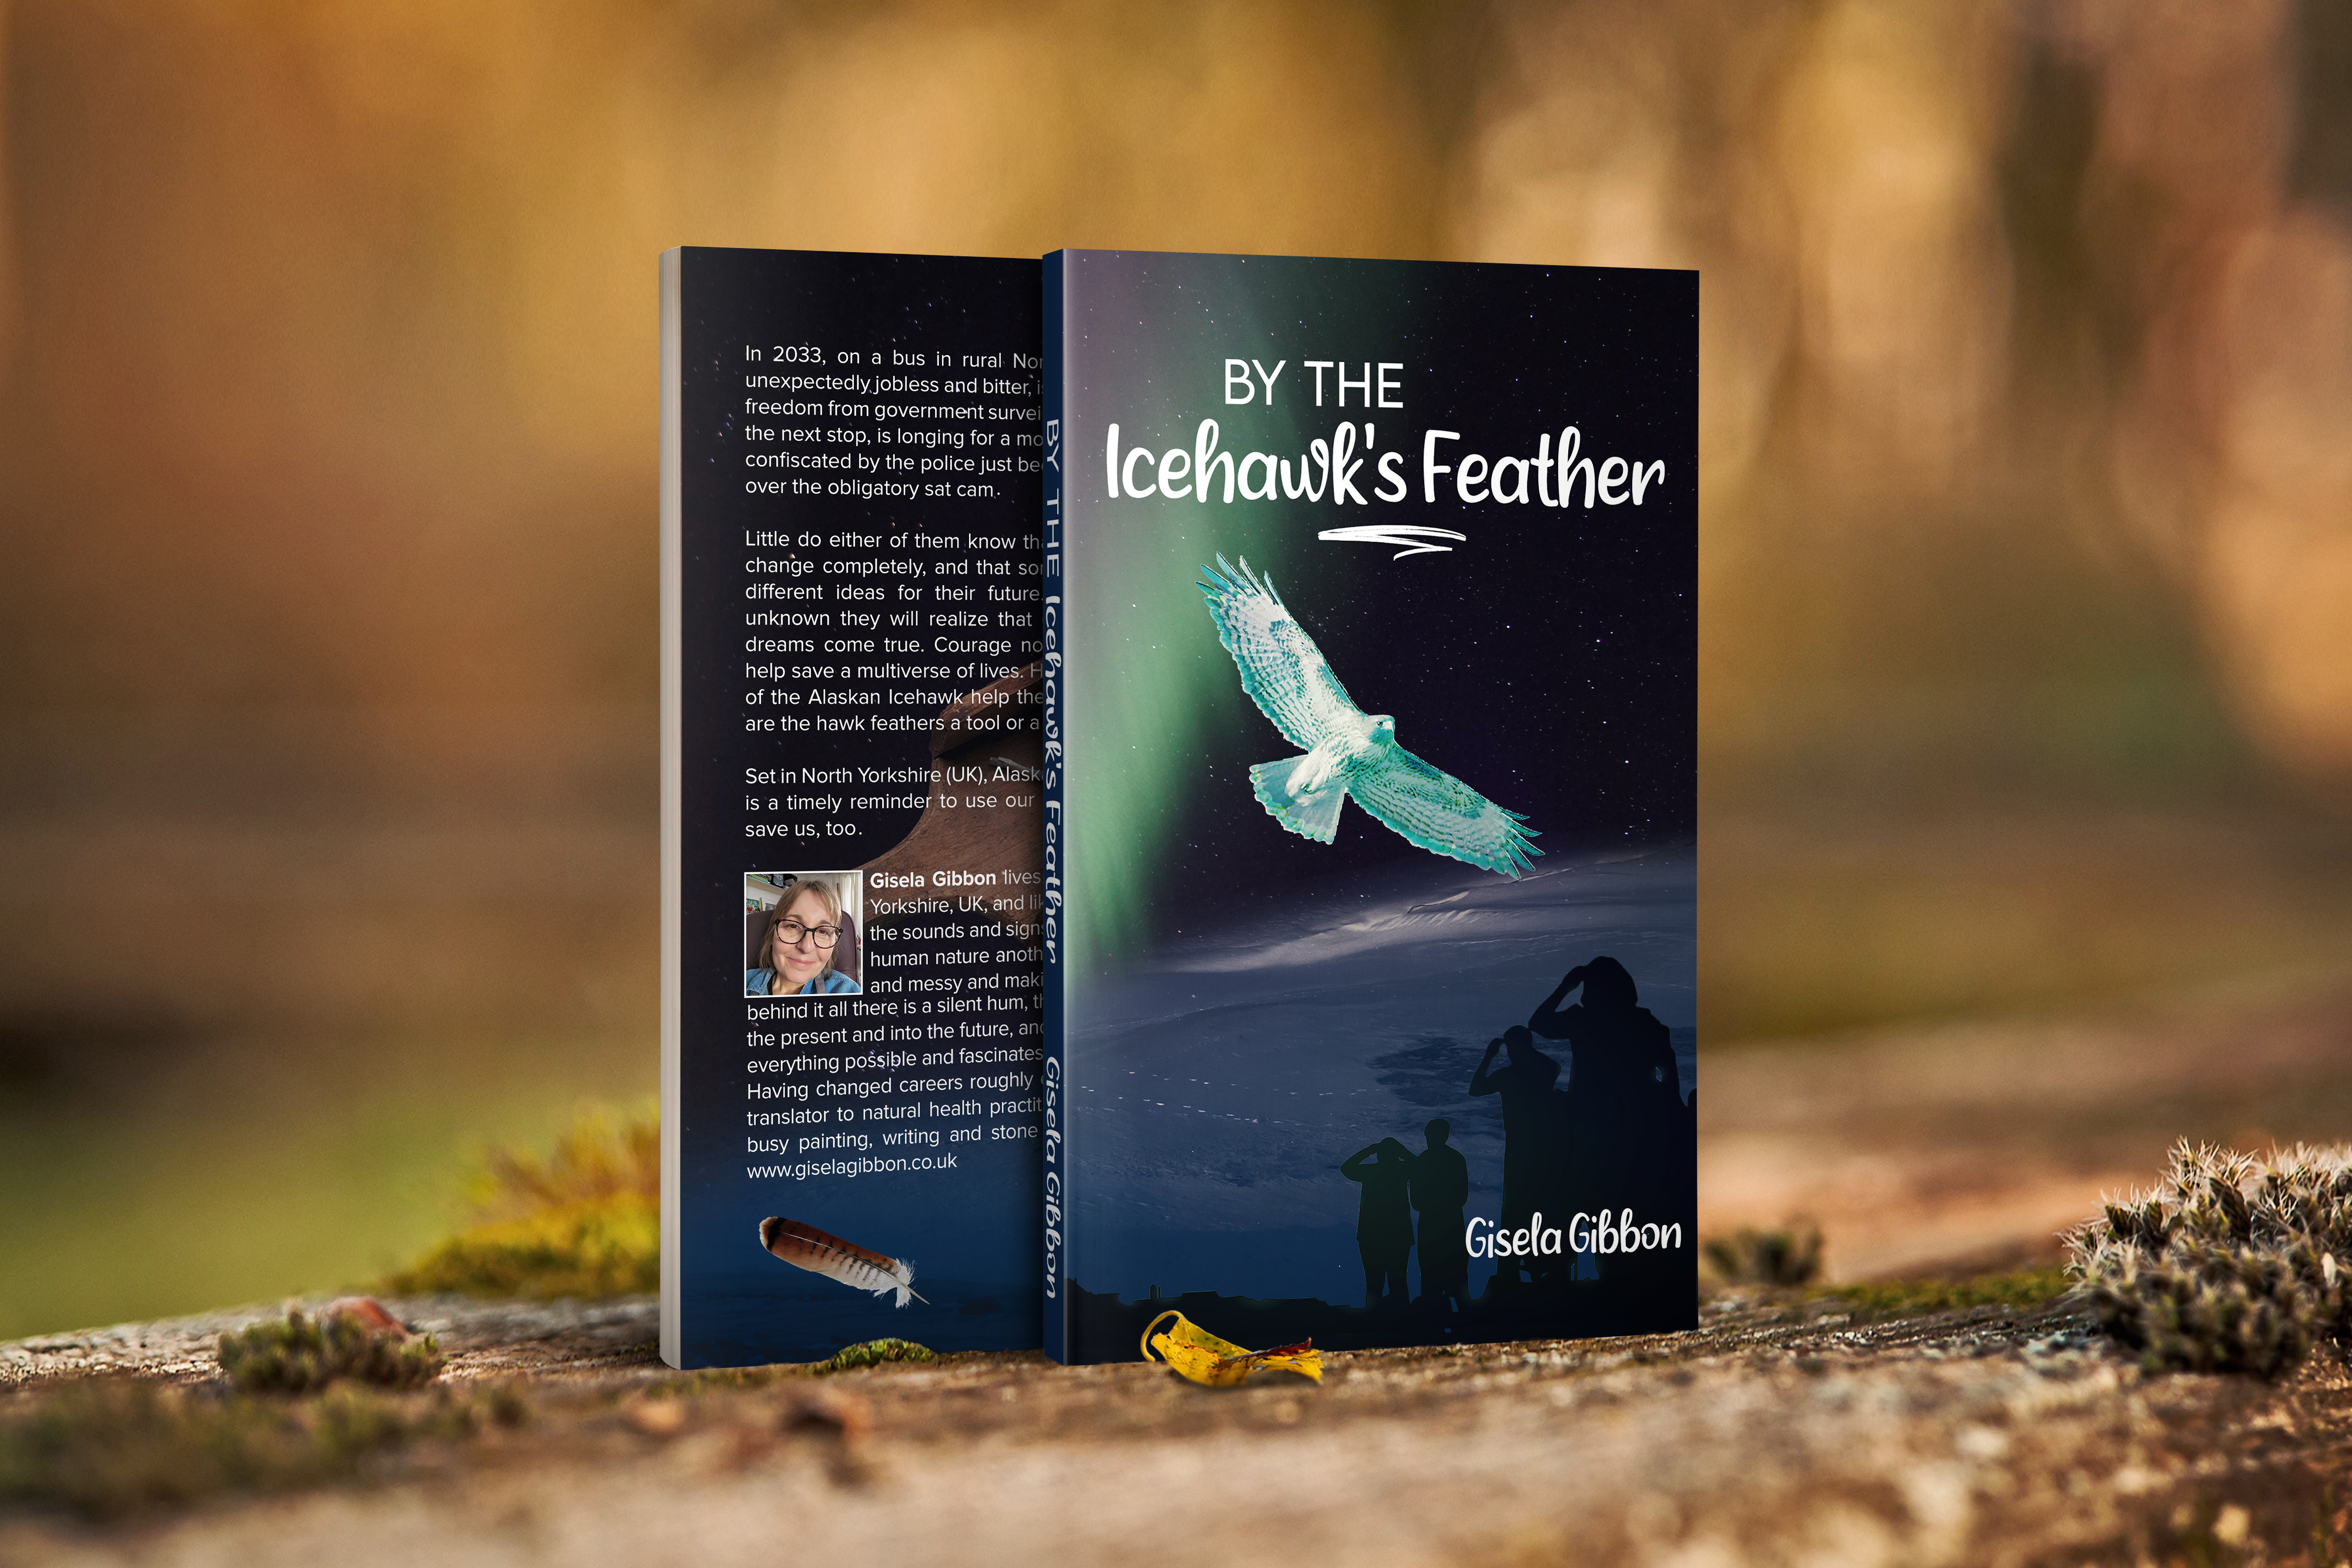 By The Icehawk's Feather, Gisela Gibbon